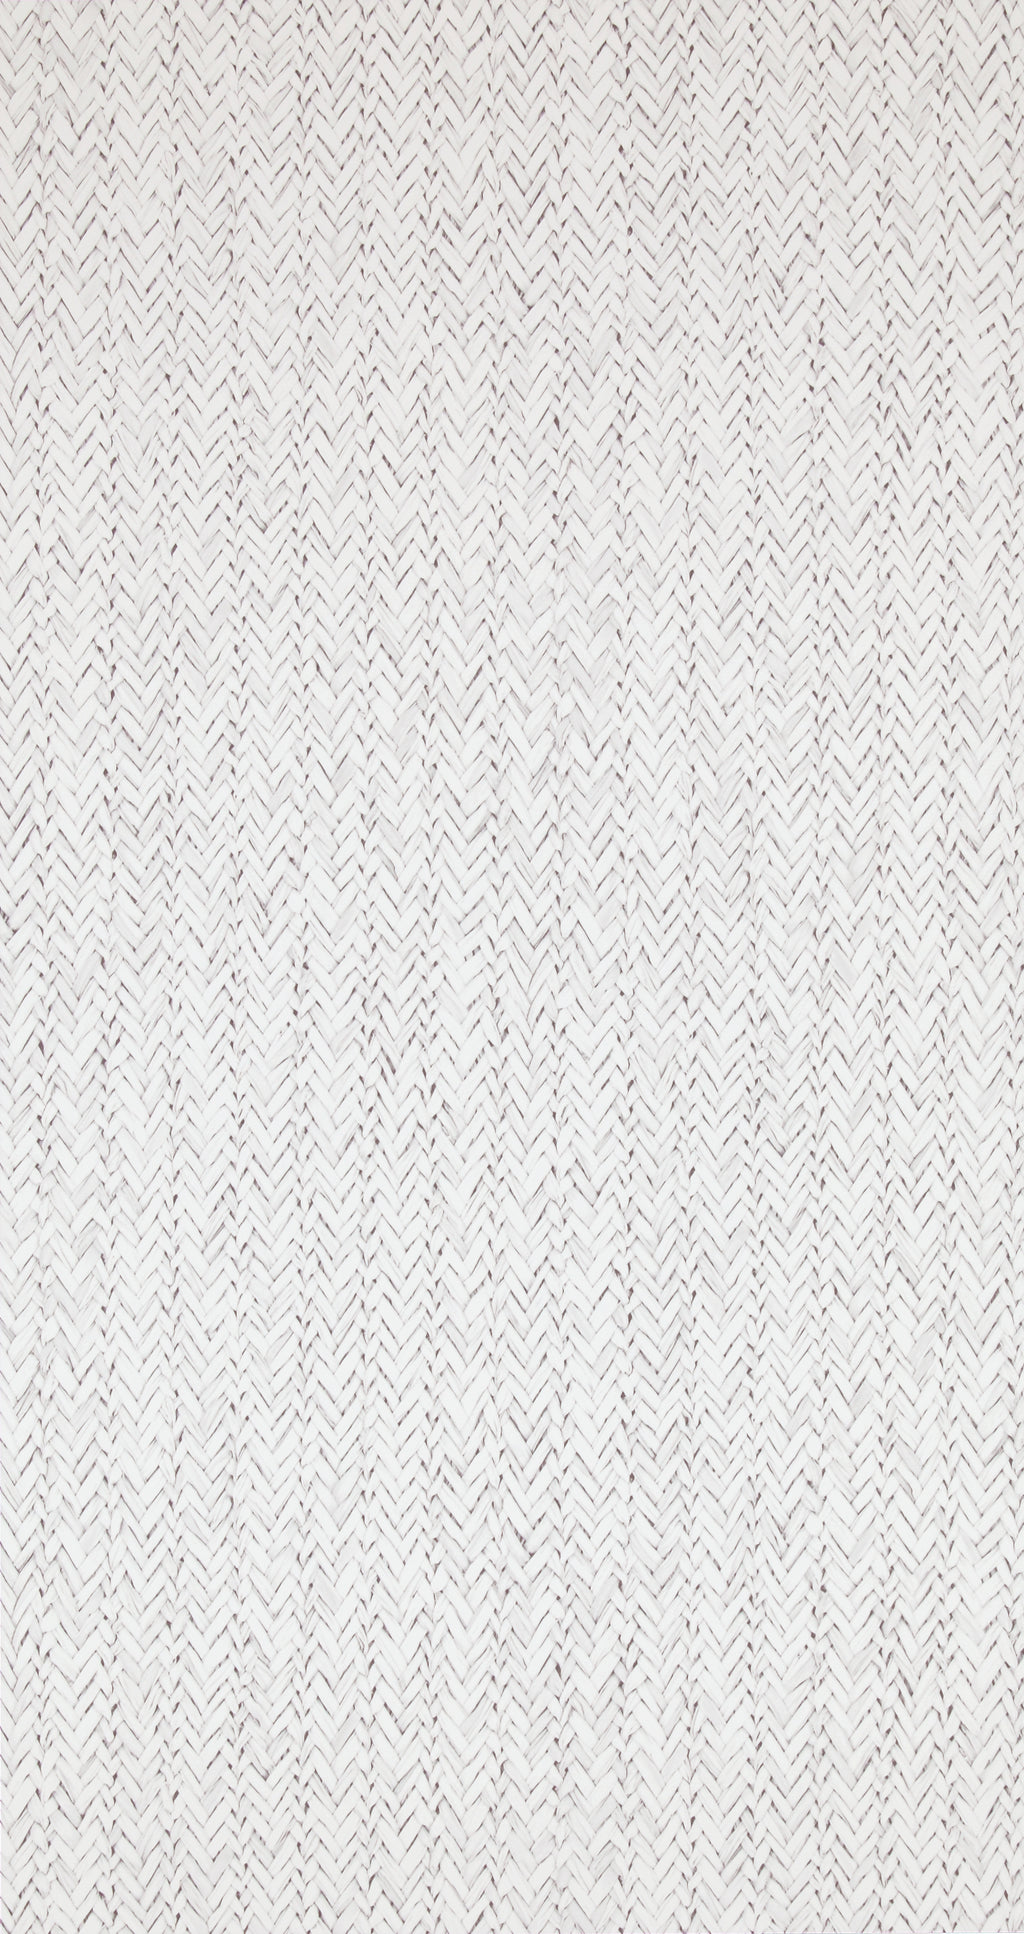 Gray Faux Woven Wallpaper R4315 | Transitional Home Wall Covering